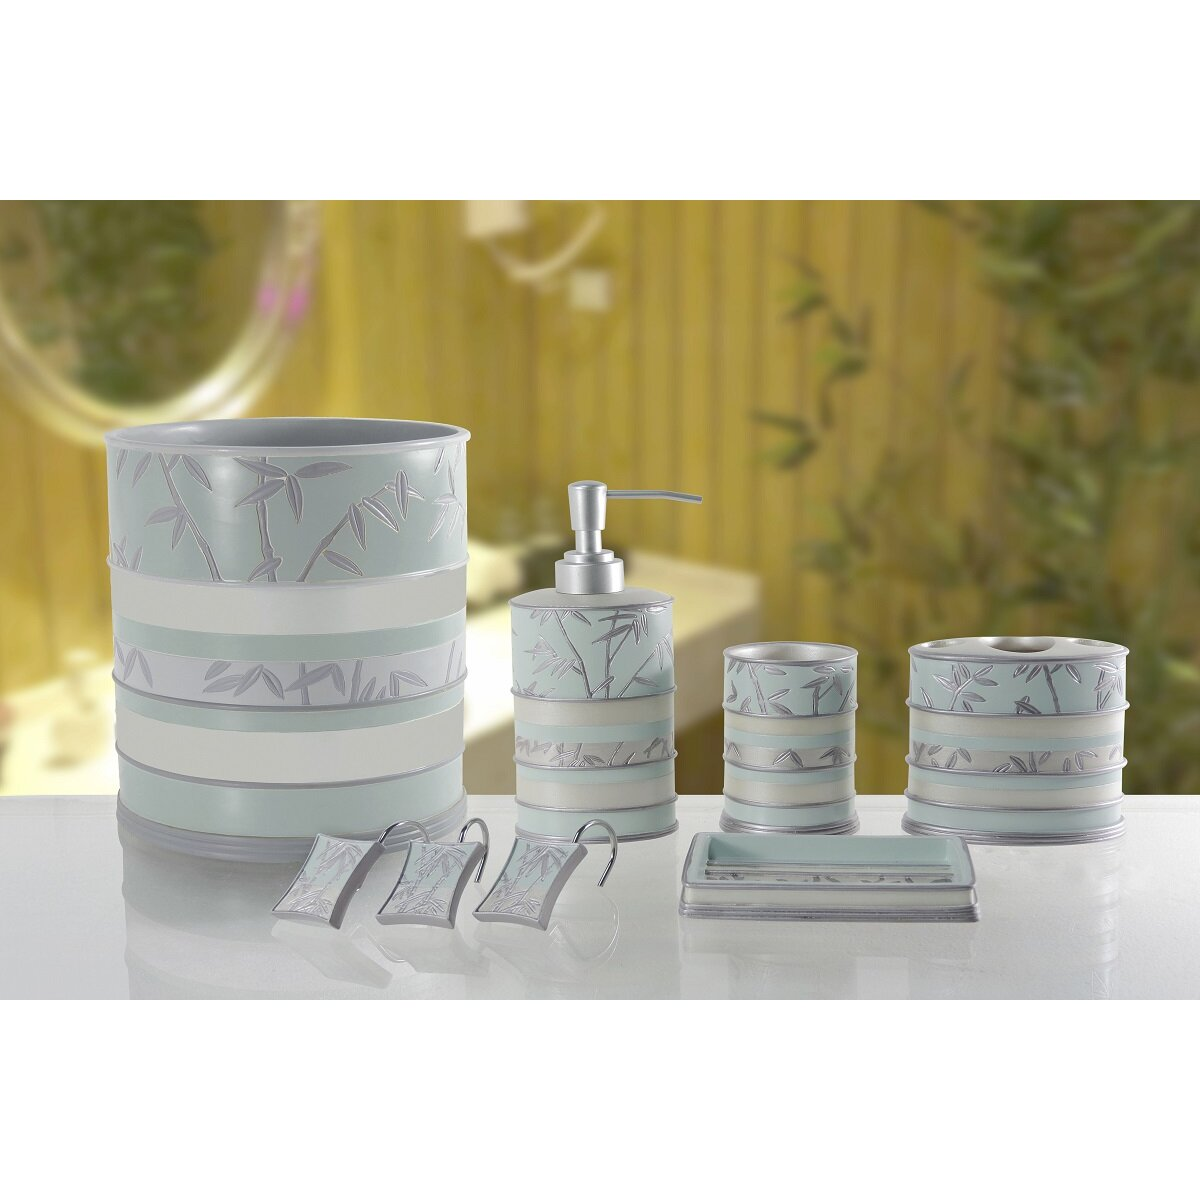 Daniels bath venezia 5 piece bathroom accessory set for Bathroom 5 piece set